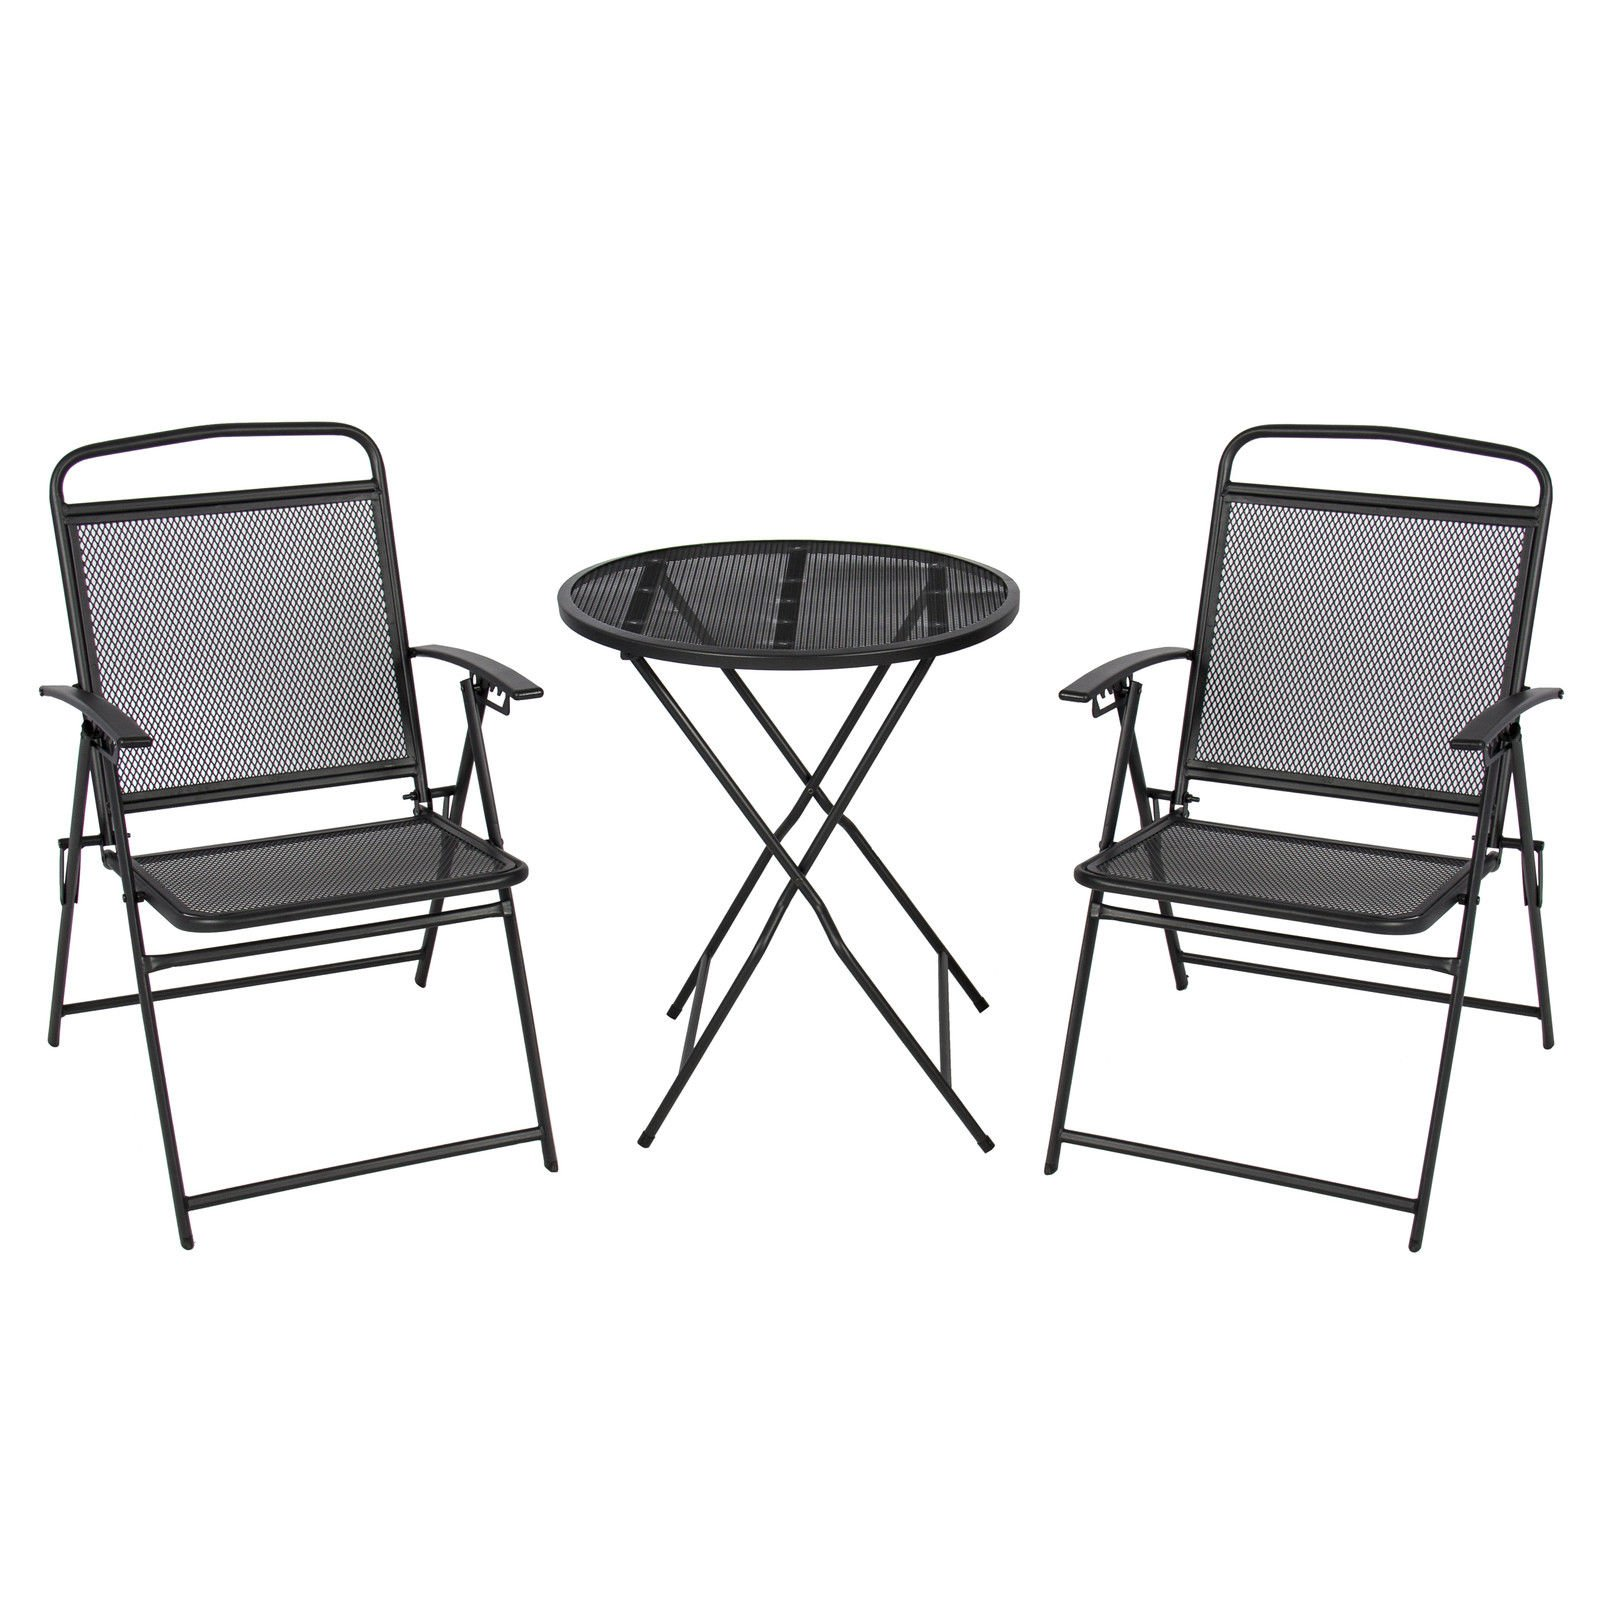 3 pc Patio Bistro Set Outdoor Table and Chairs Wrough Iron With Black Finish